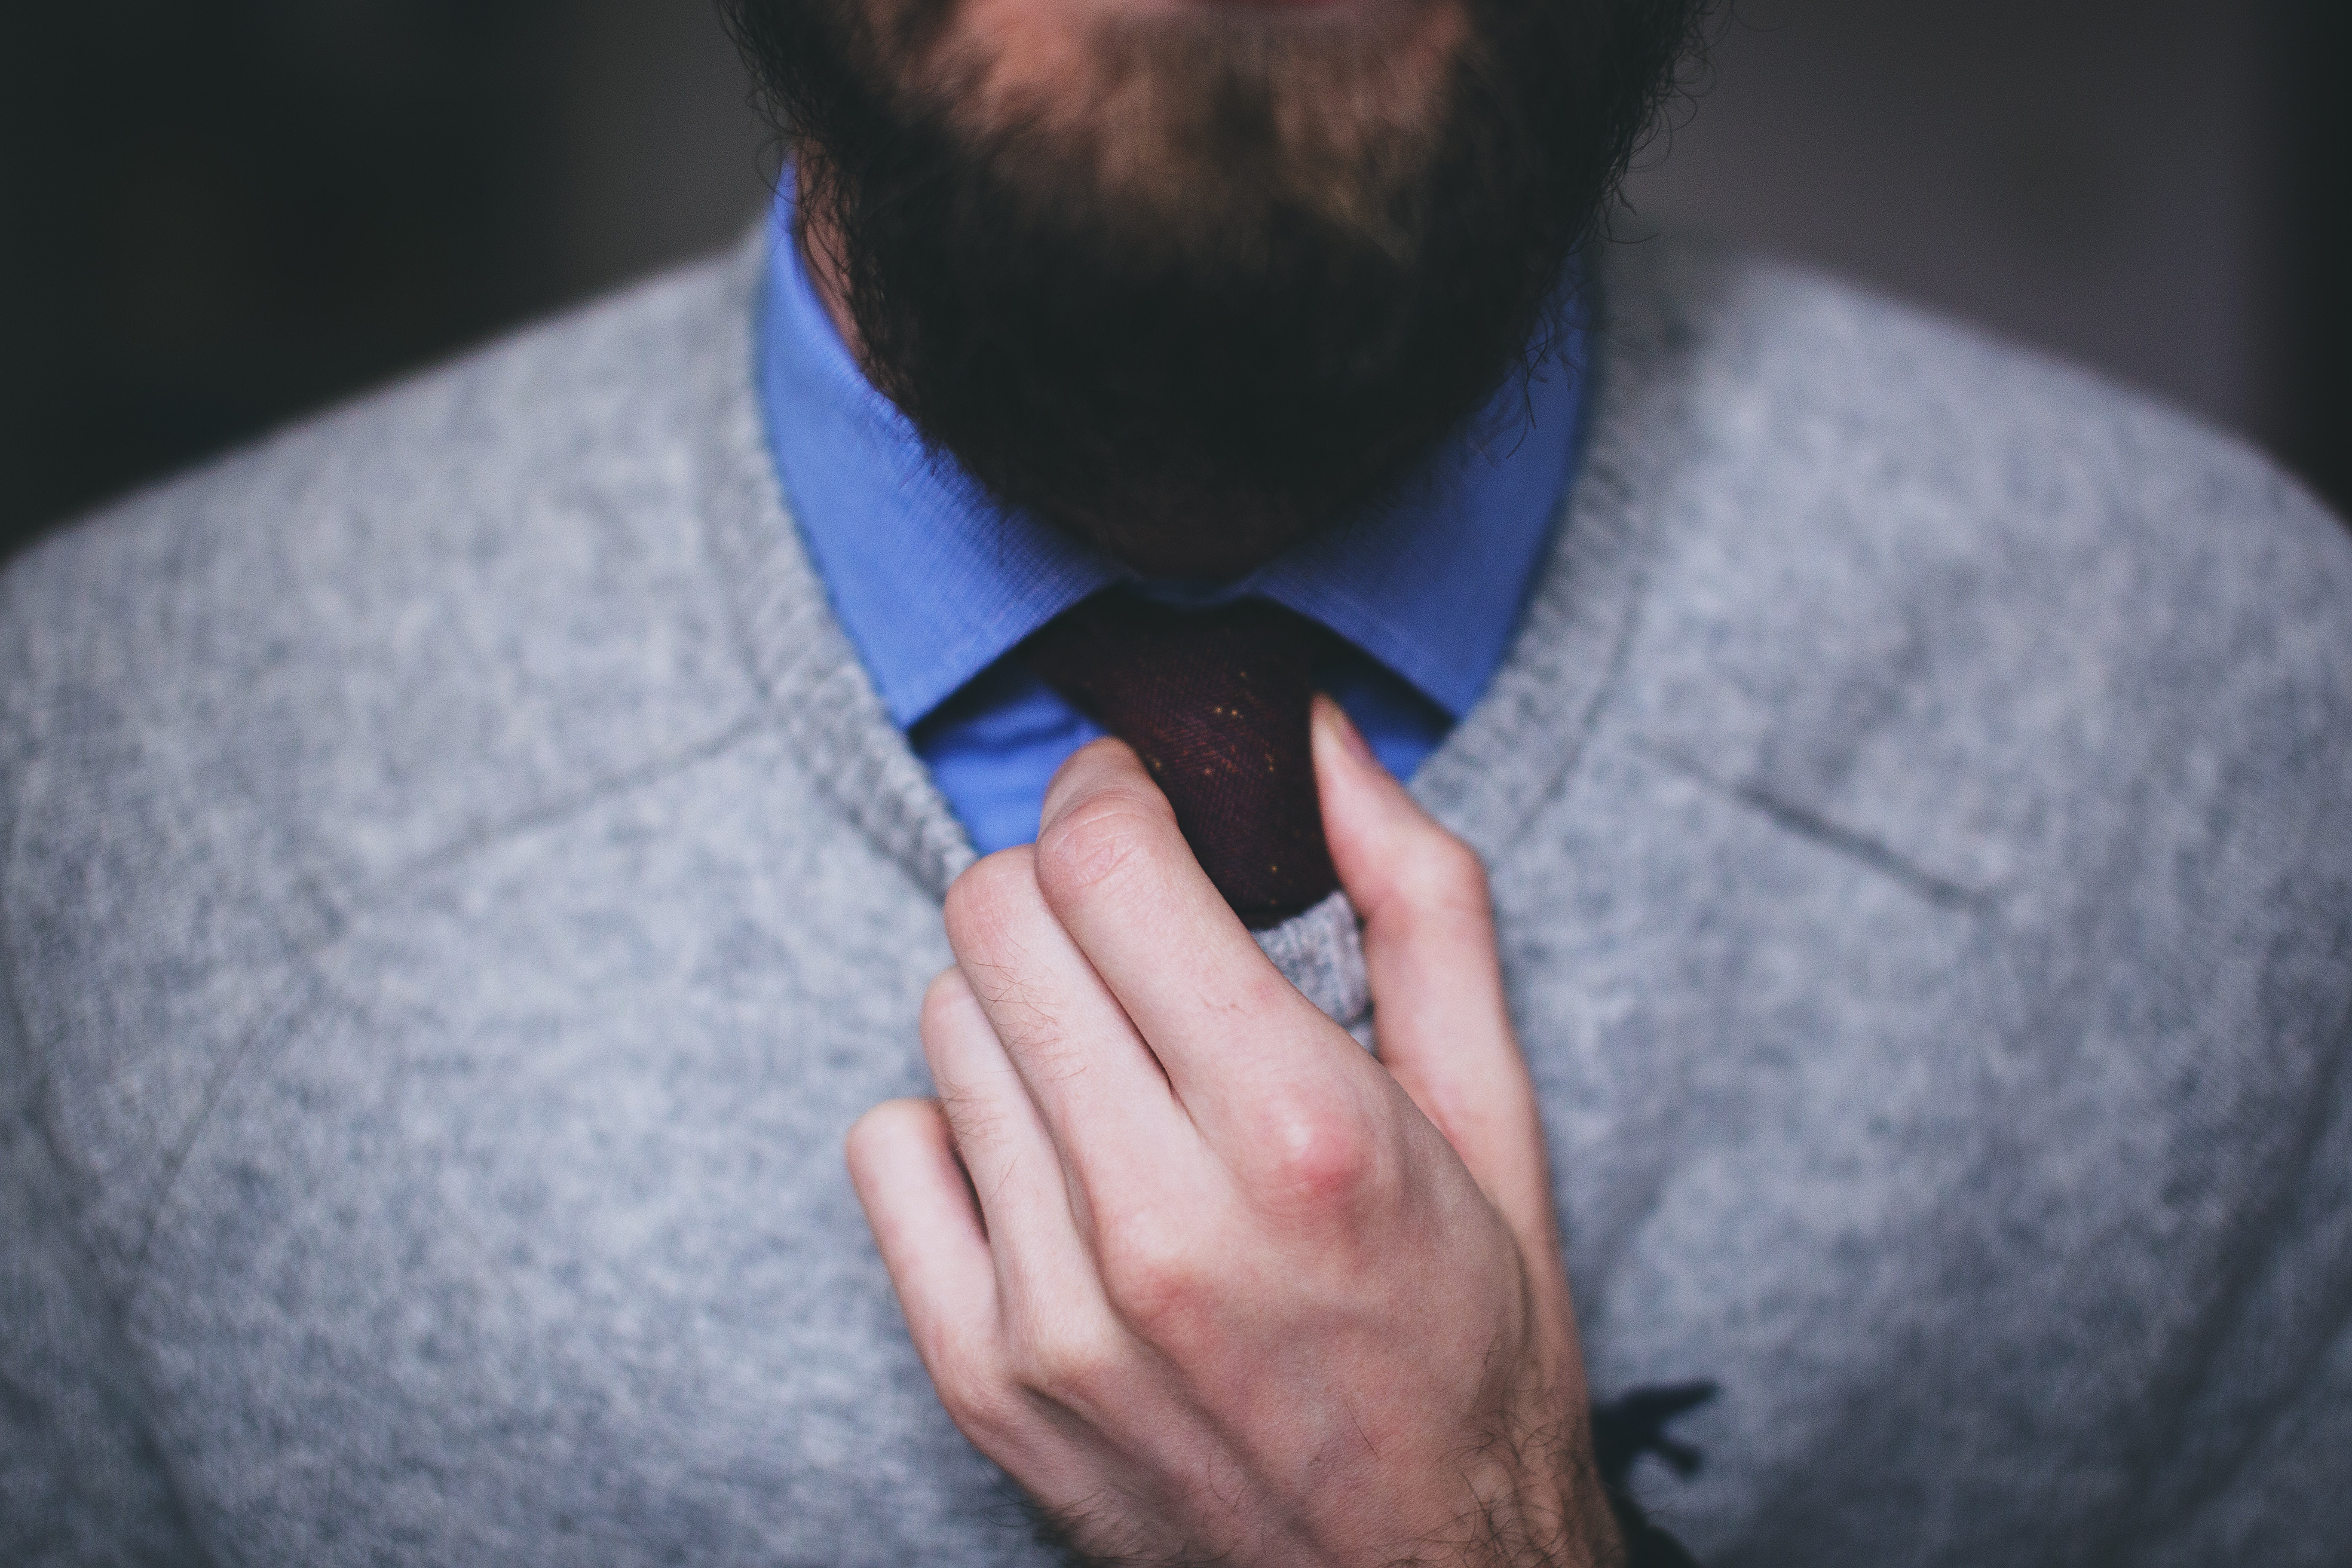 Research Check: do neckties reduce blood supply to the brain?